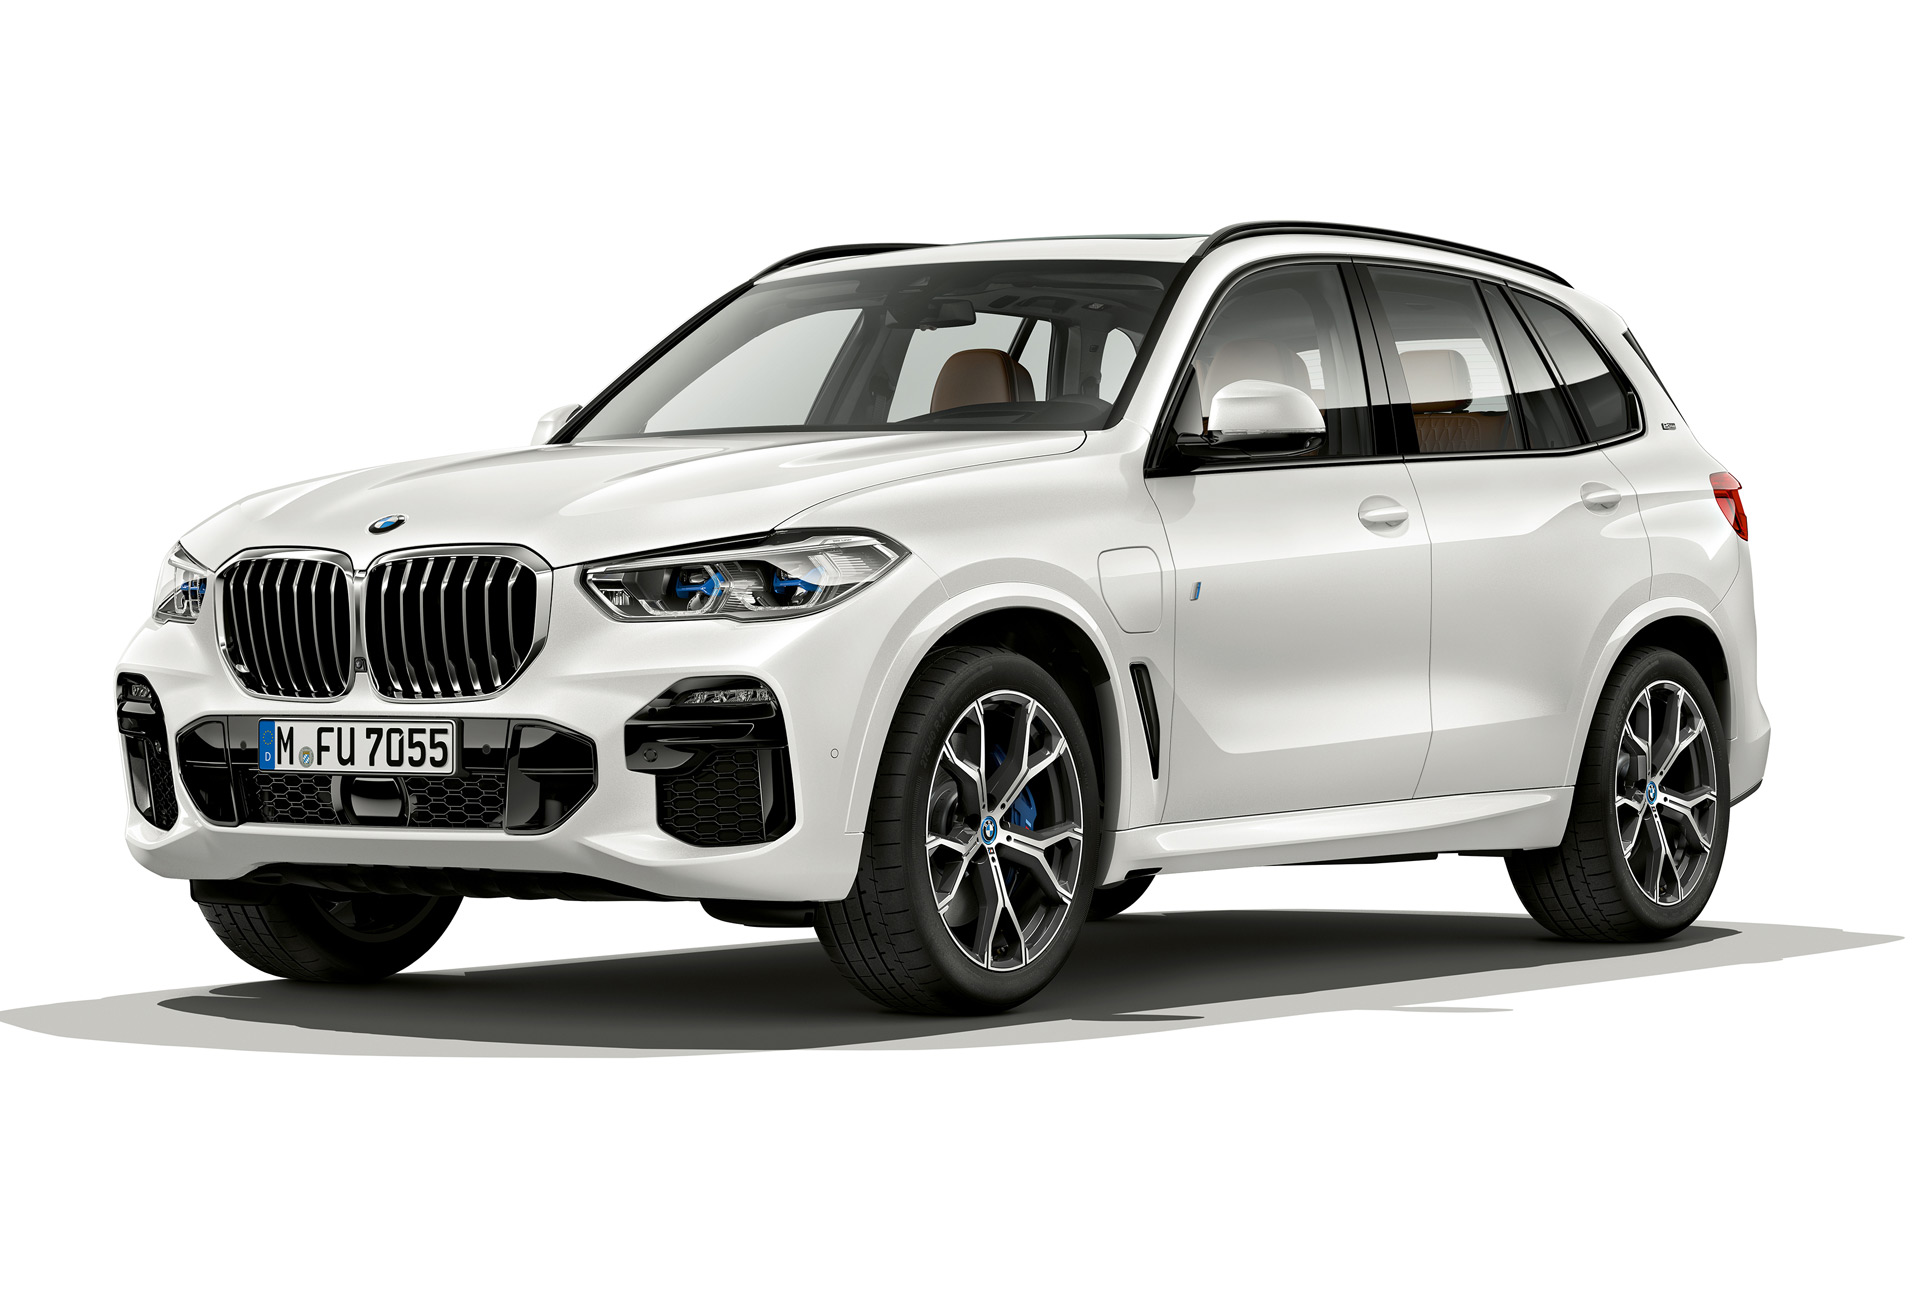 2020 BMW X5 XDrive40e Specs, Engine And Release Date >> 2021 Bmw X5 Xdrive45e Plug In Hybrid Will Have More Range 6 Cylinders